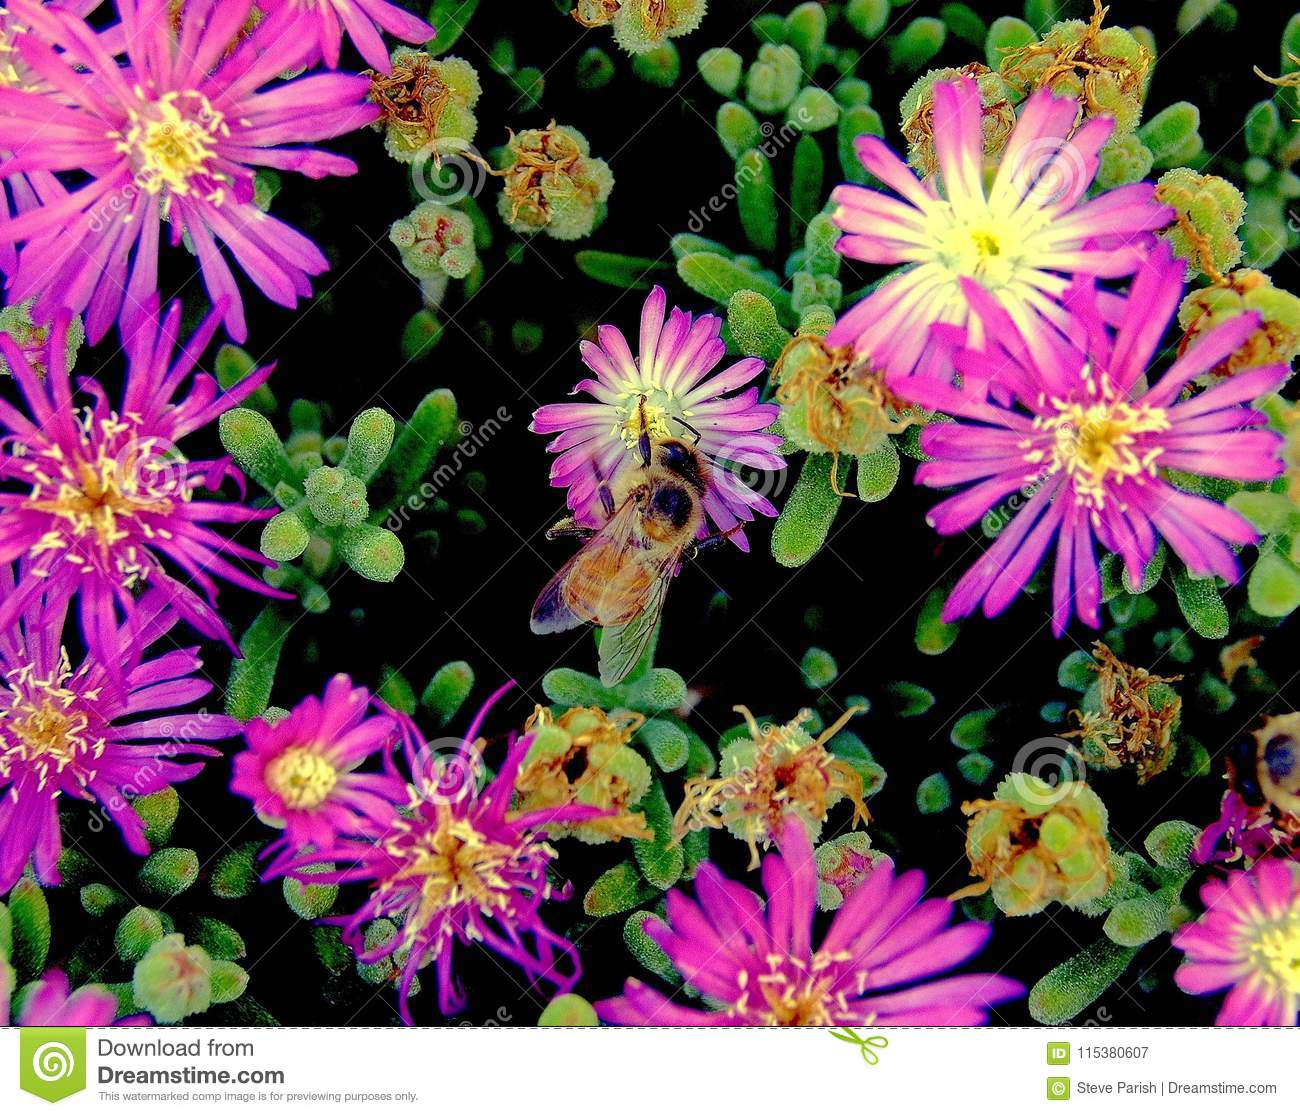 Closeup of honey bee in floral color explosion